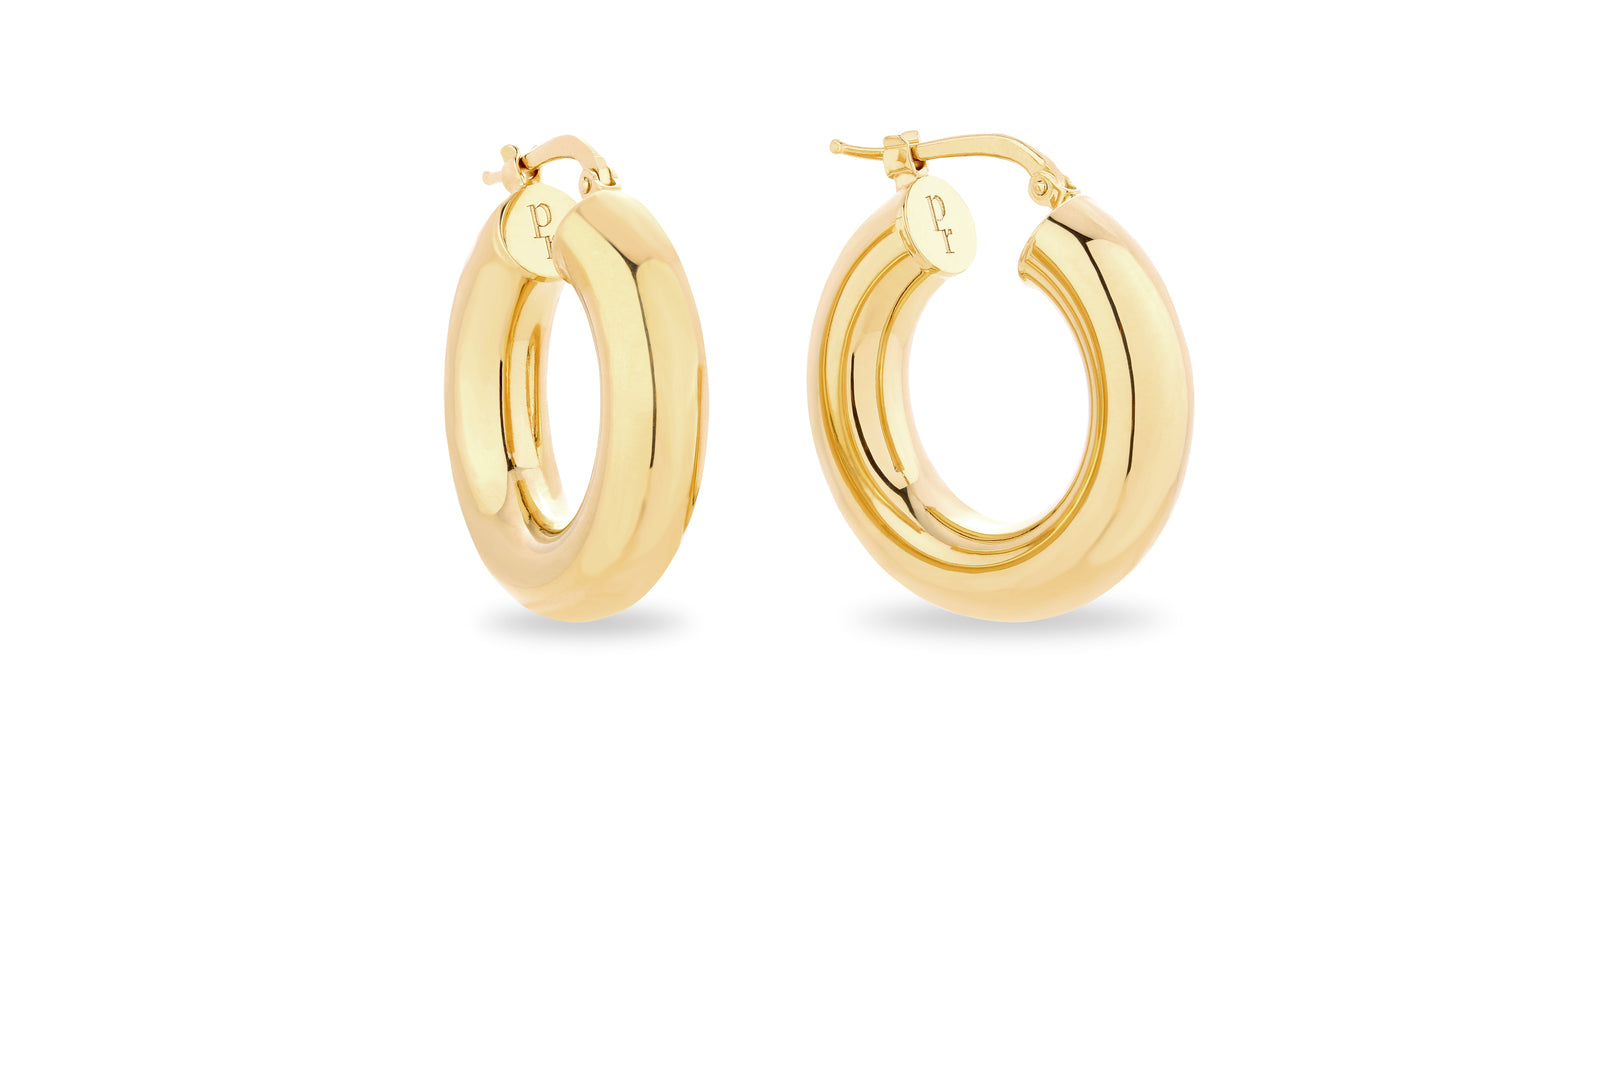 GOLD CHUNKY HOOP EARRINGS • XS